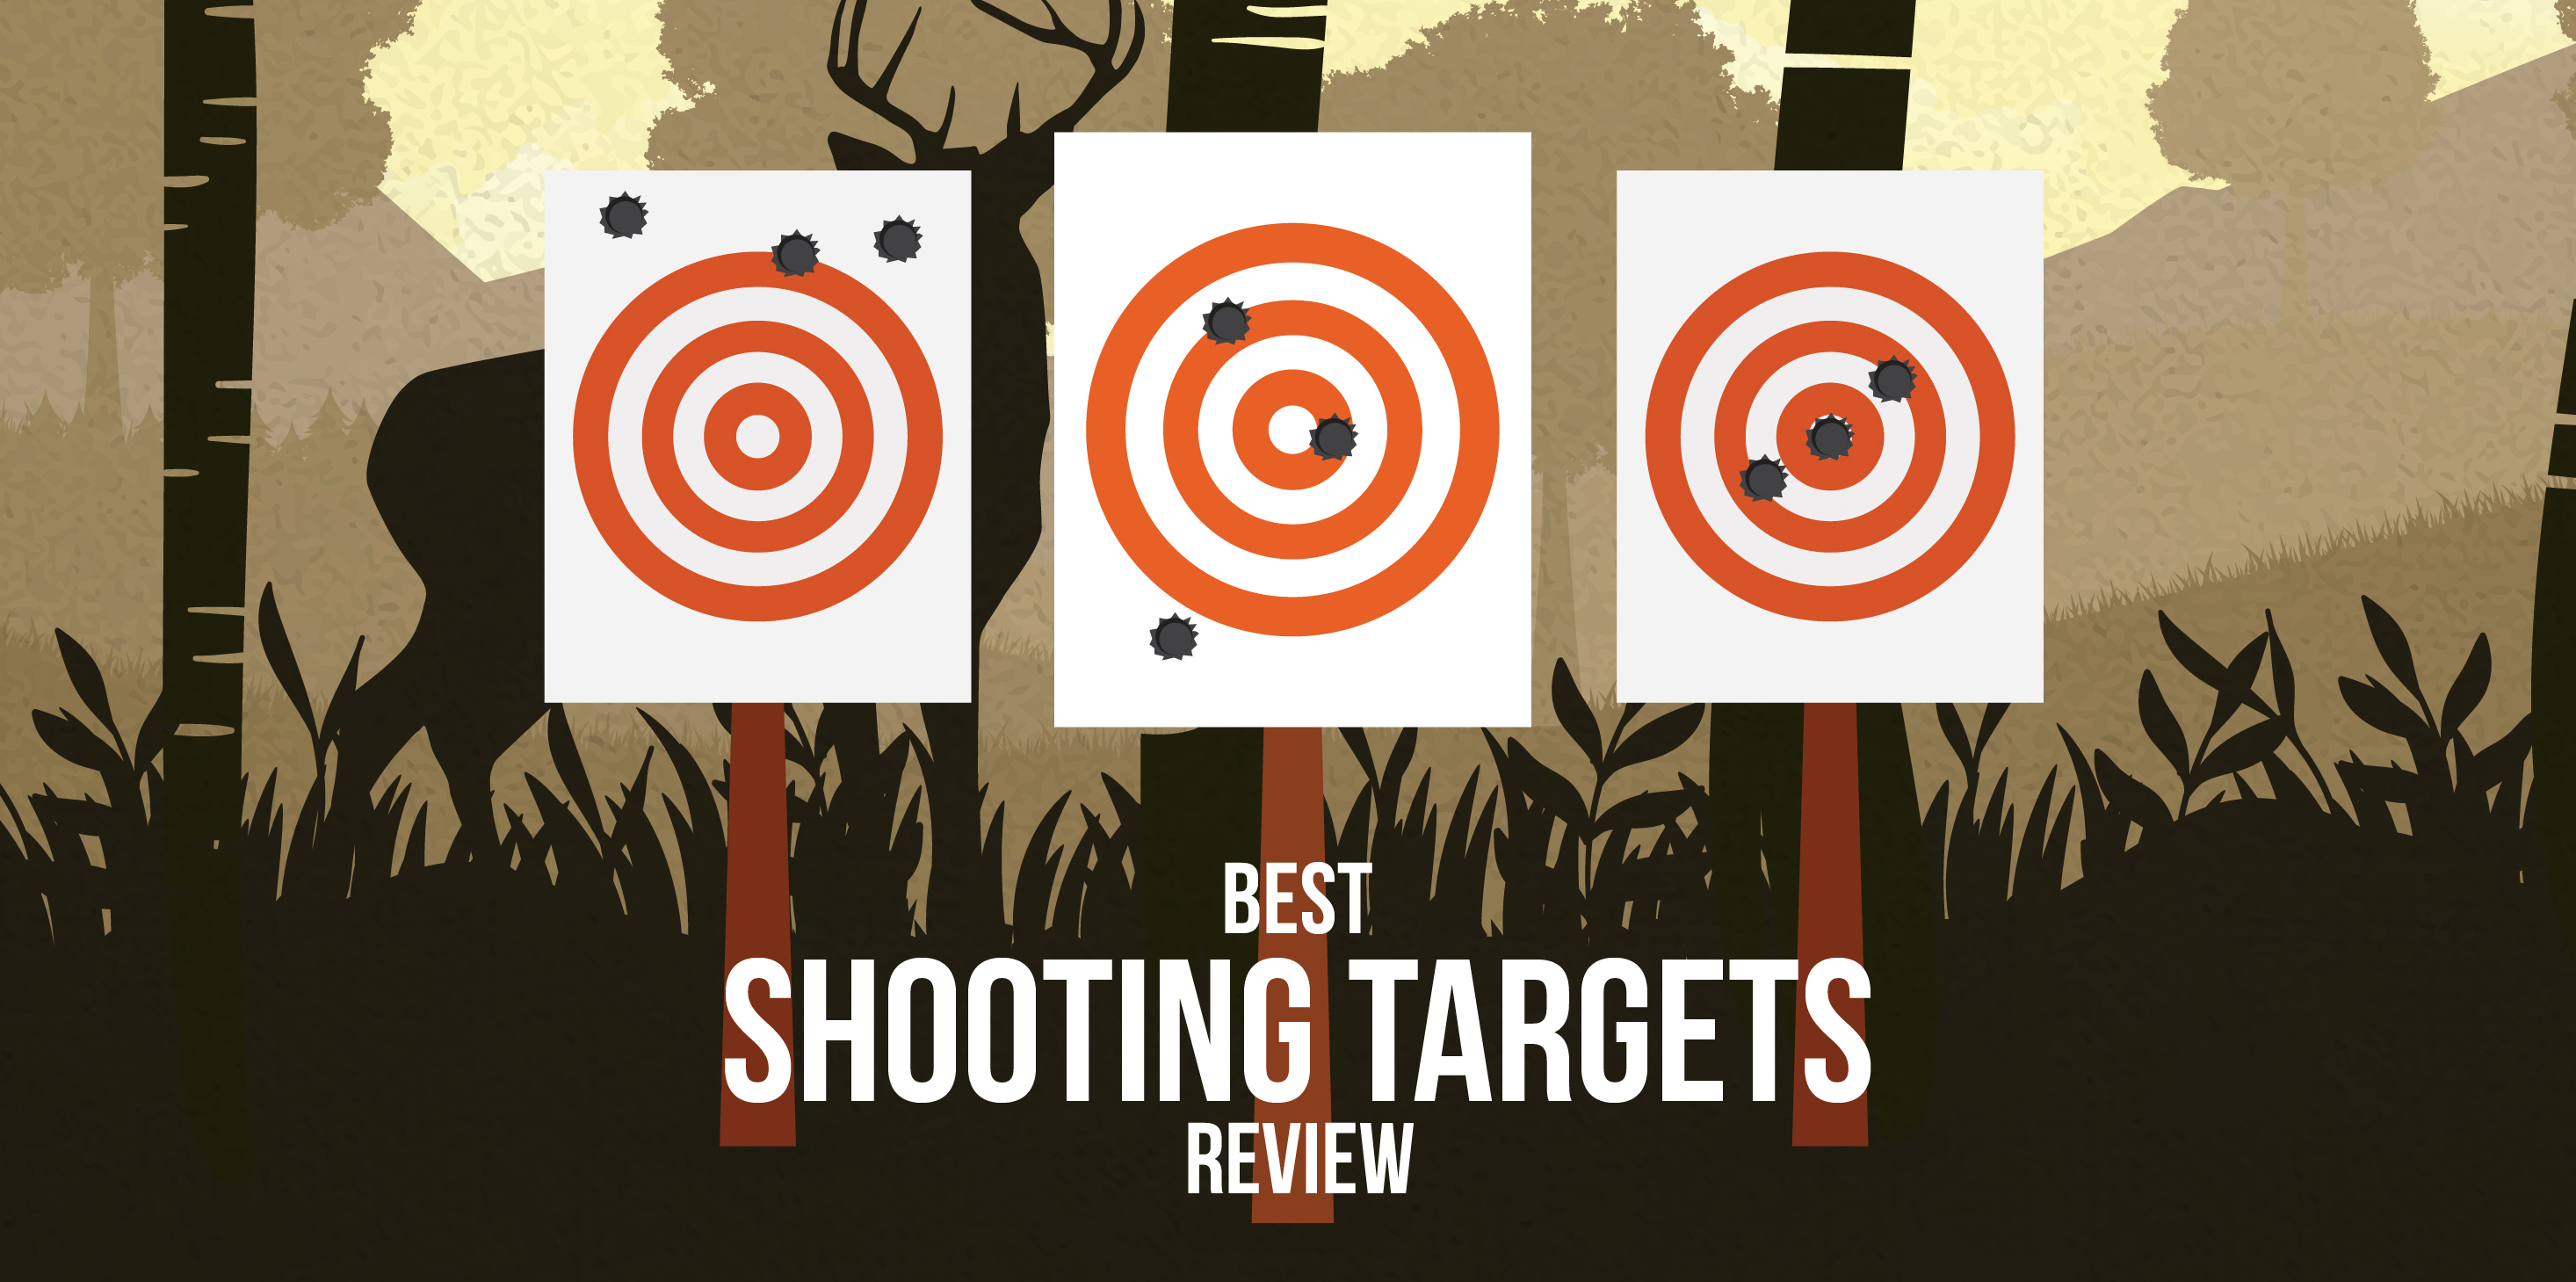 Best Shooting Targets Review